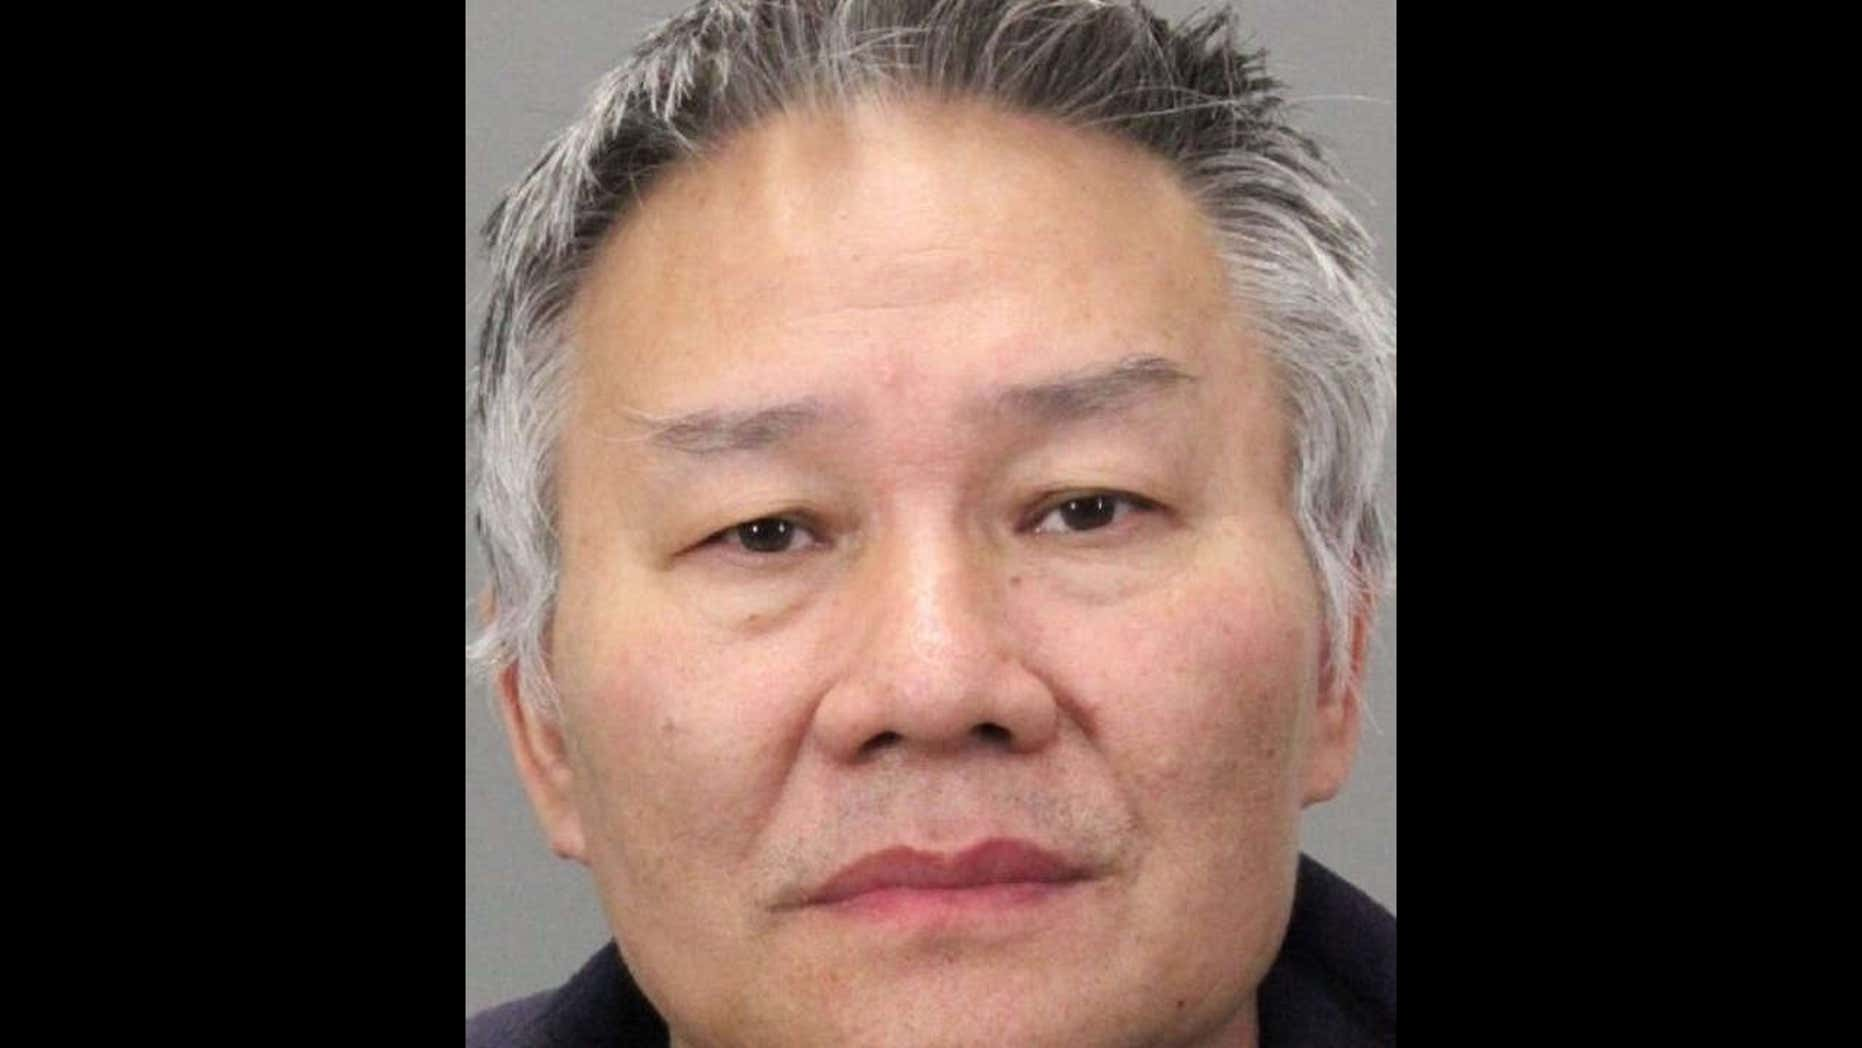 Yue Chen was arrested and charged with attempted murder.